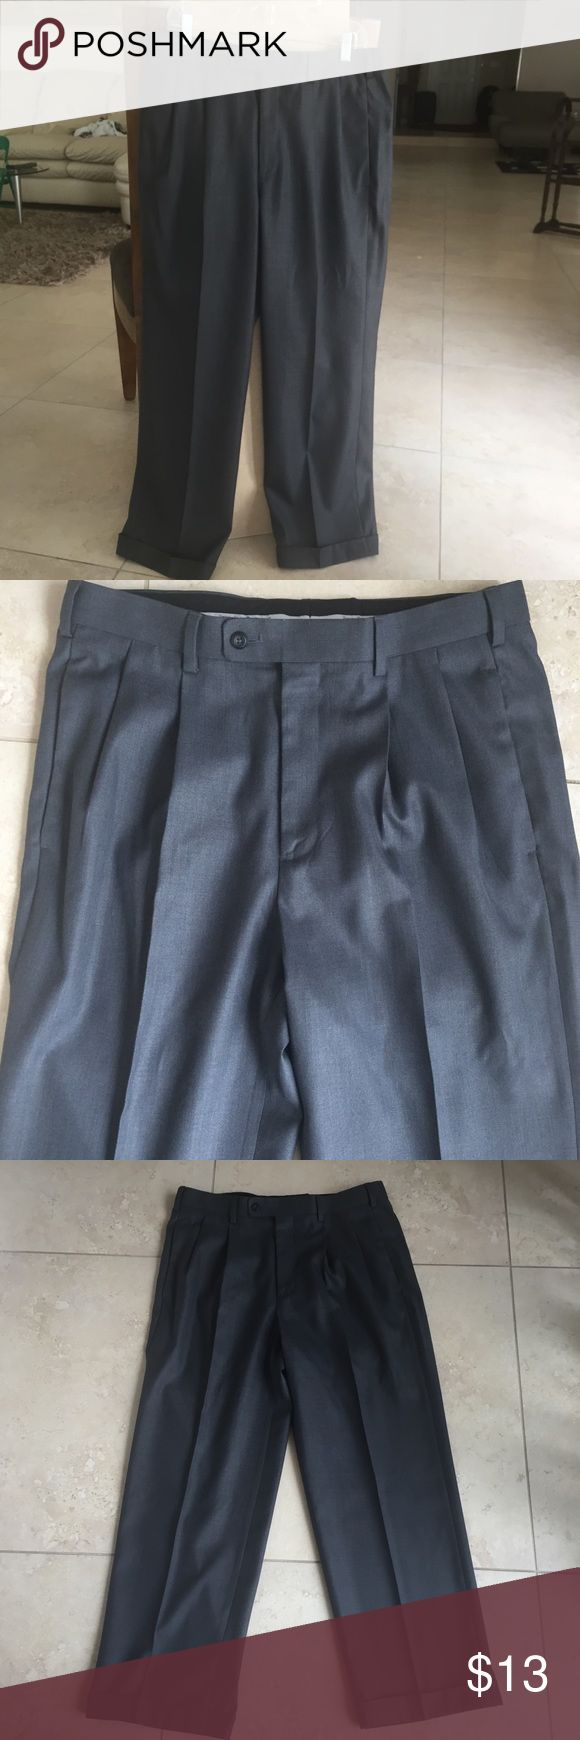 Perry Ellis 34/30 grey slacks pants Selling many items similar in size from my husbands closet and offer bundle discount on 3 or more so be sure to check out other listings of similar items you might like..... Perry Ellis slacks 34/30 condition no flaws and excellent condition worn once or twice recently dry-cleaned Perry Ellis Pants Dress